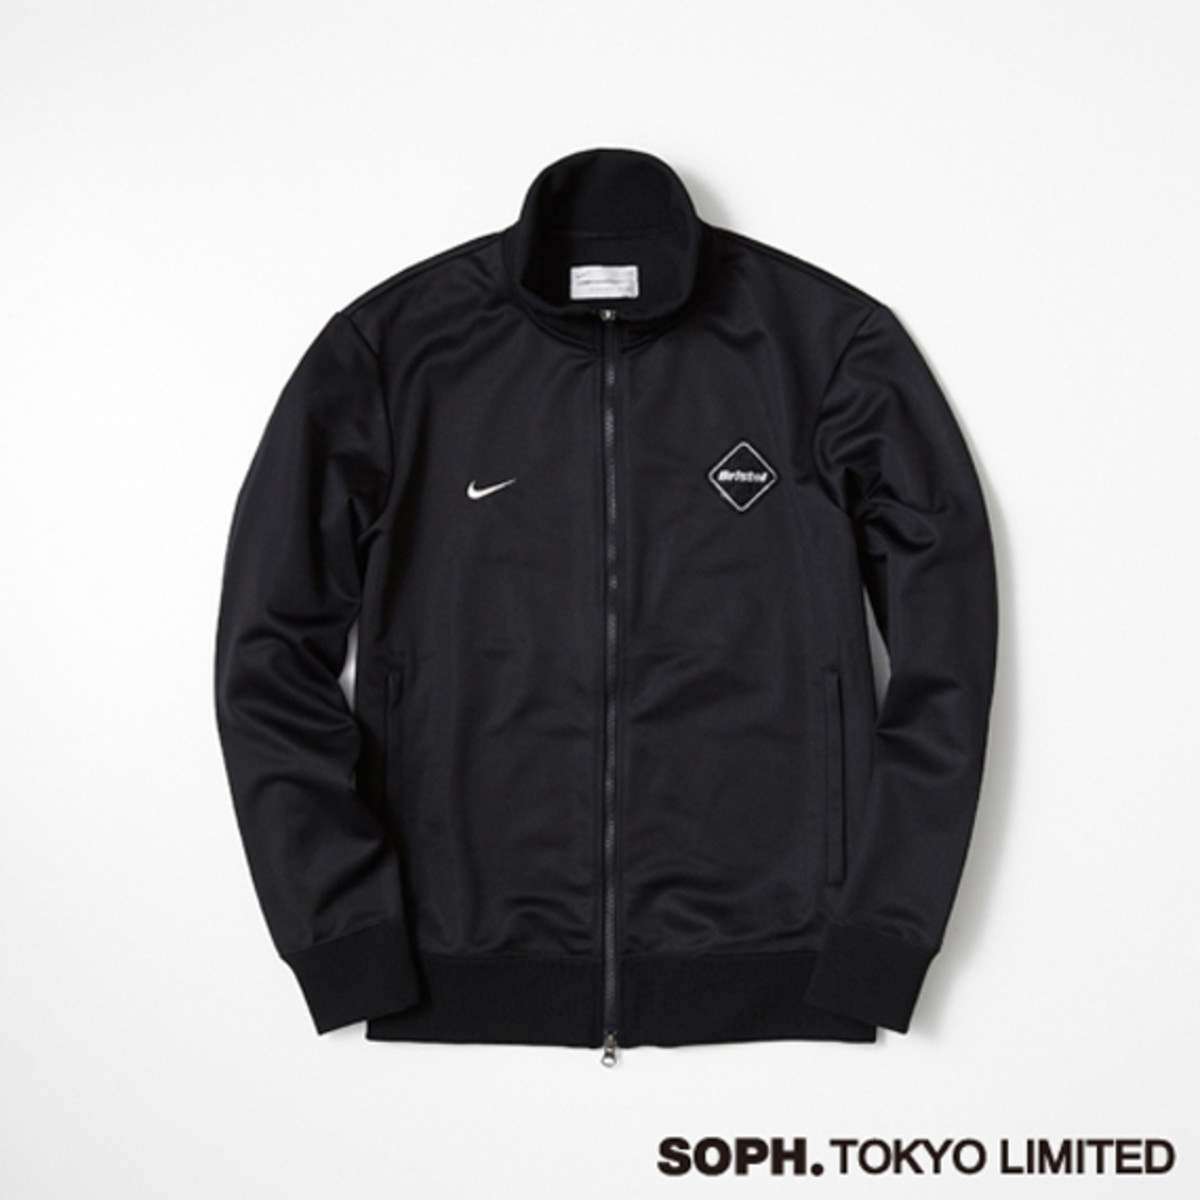 fcrb-mastermind-japan-soph-tokyo-13th-anniversary-collection-01